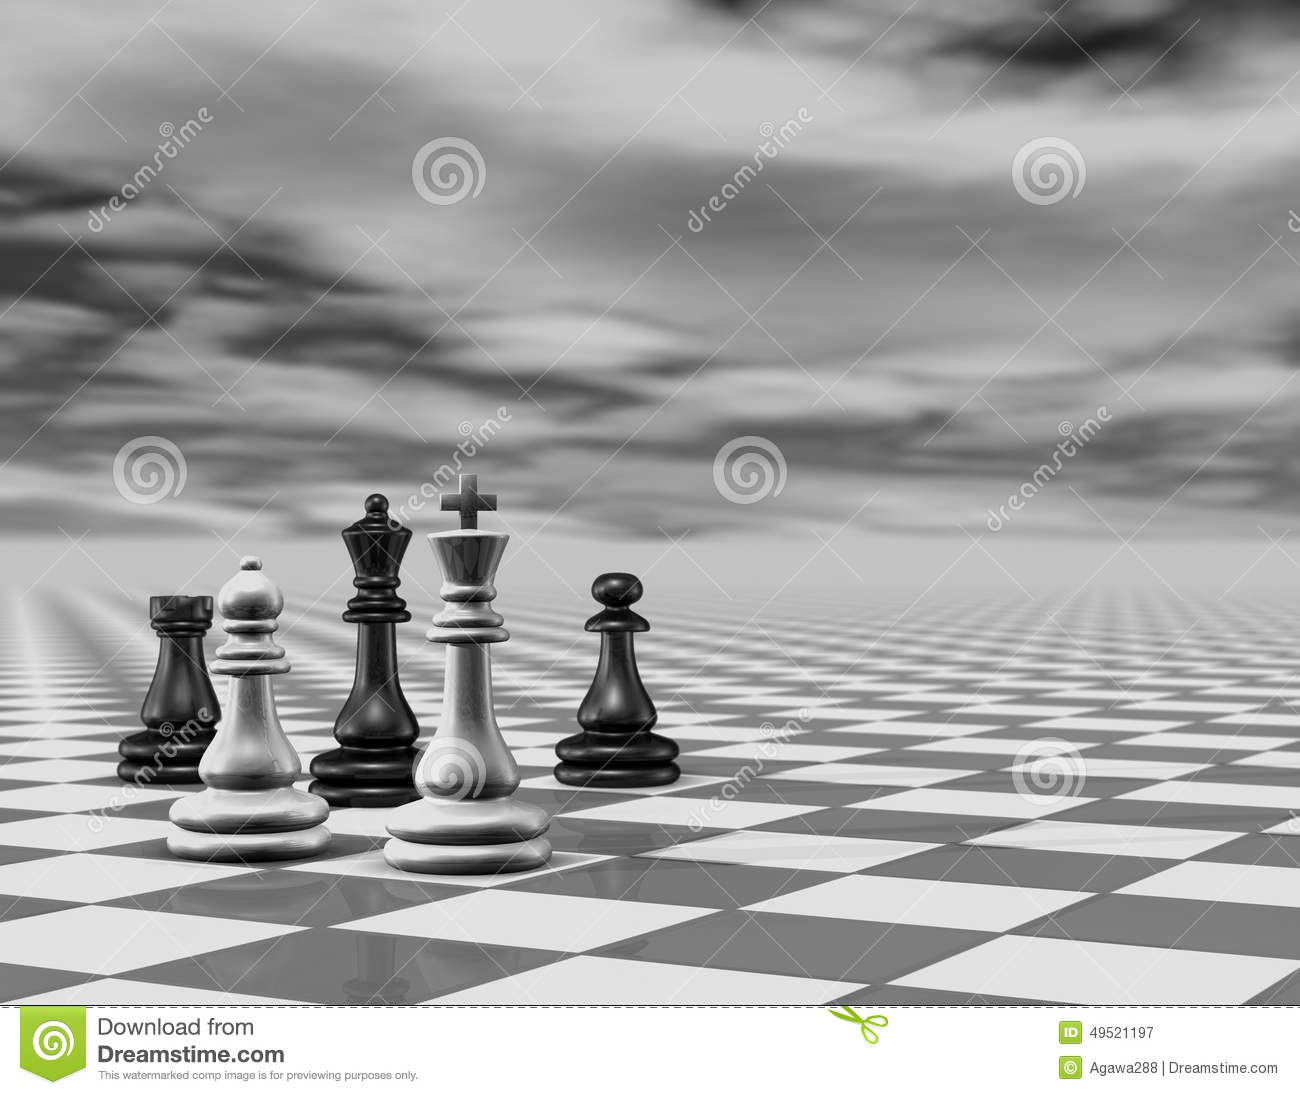 free illustration chessboard render - photo #27